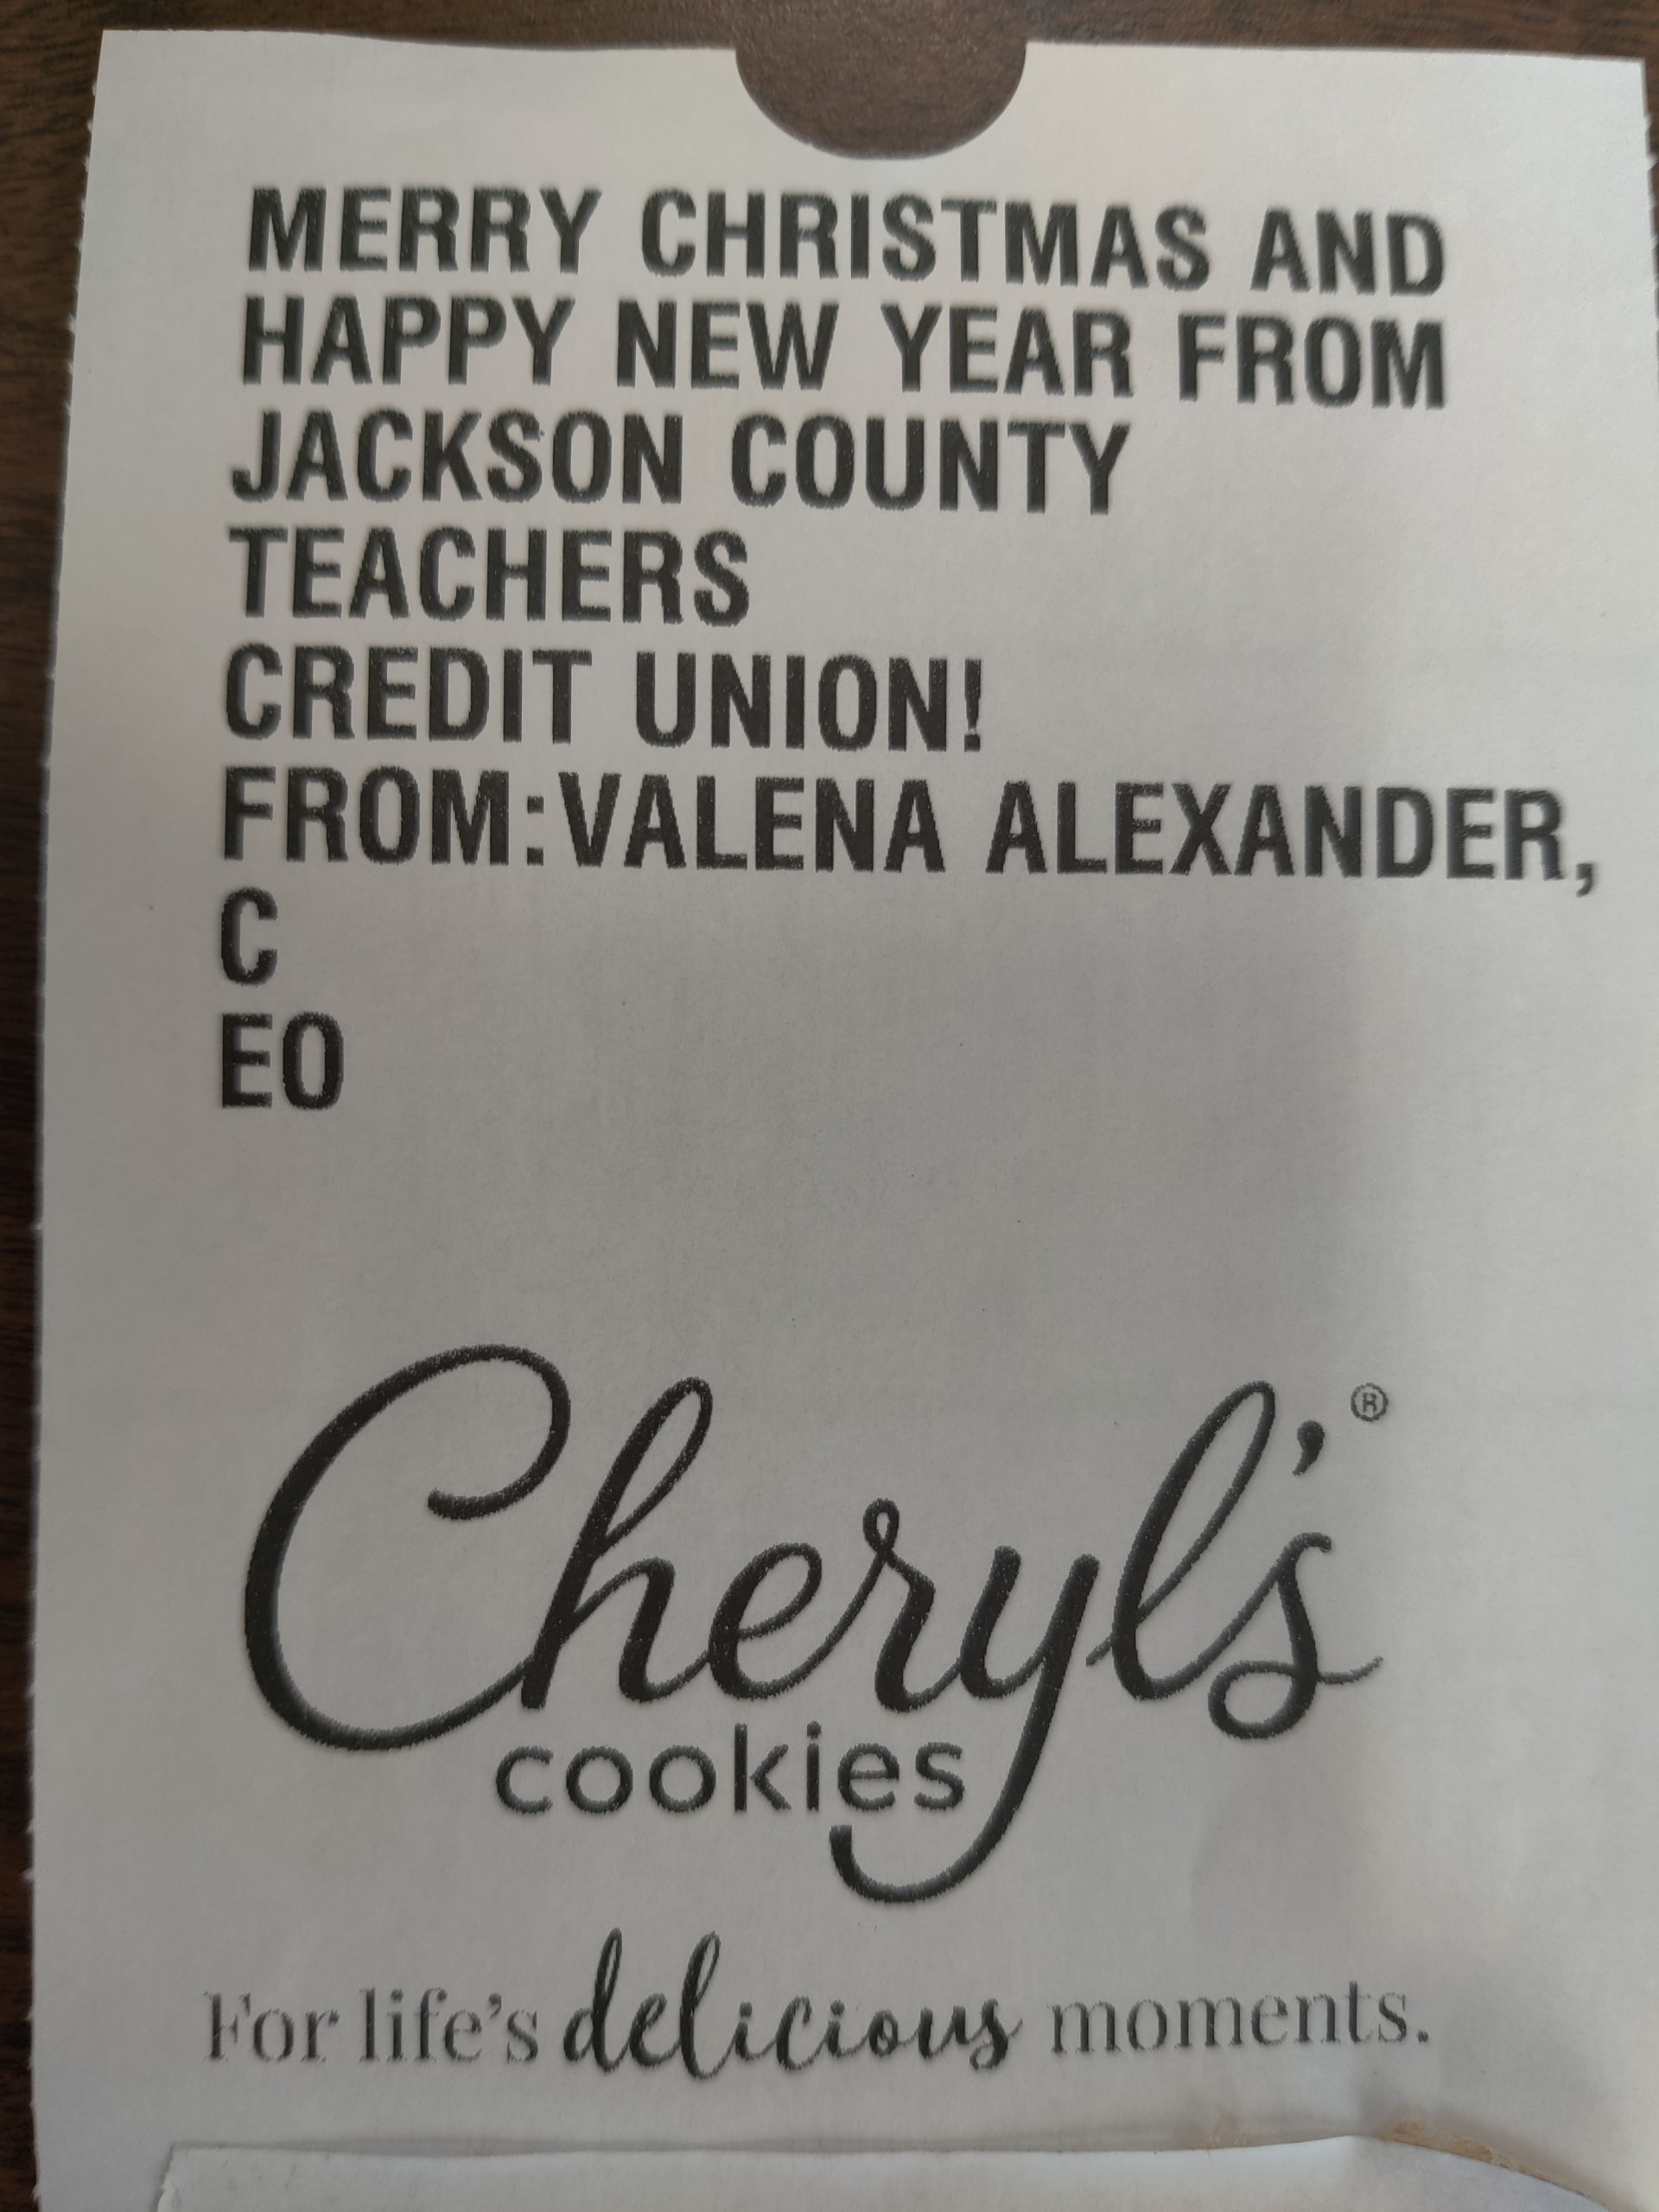 12-08-2020 Gift of Cookies from Valena